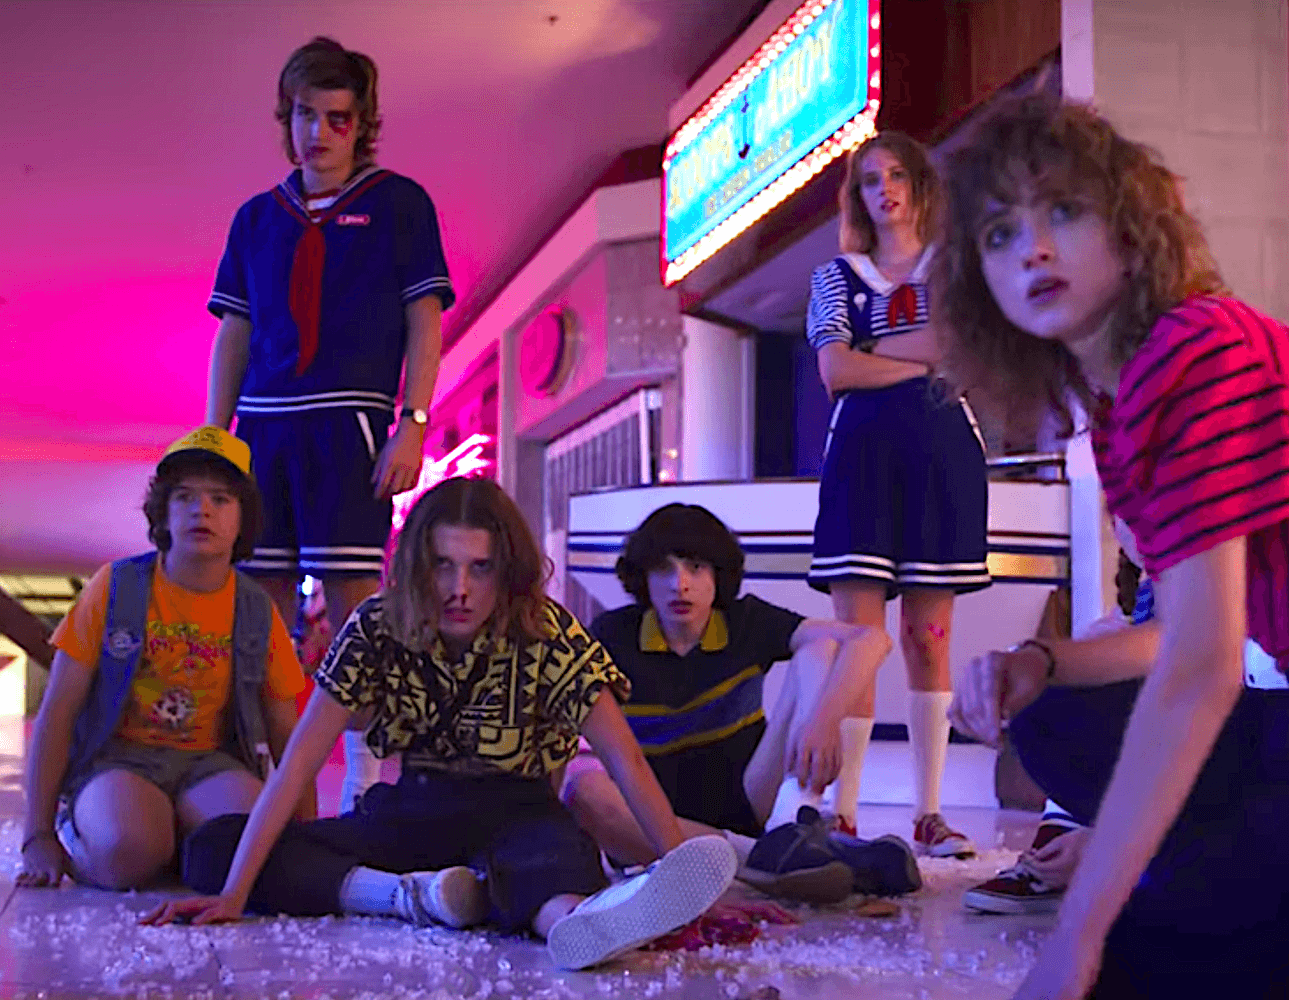 stranger things season 3 1553085332 20 Things You Didn't Know About Stranger Things